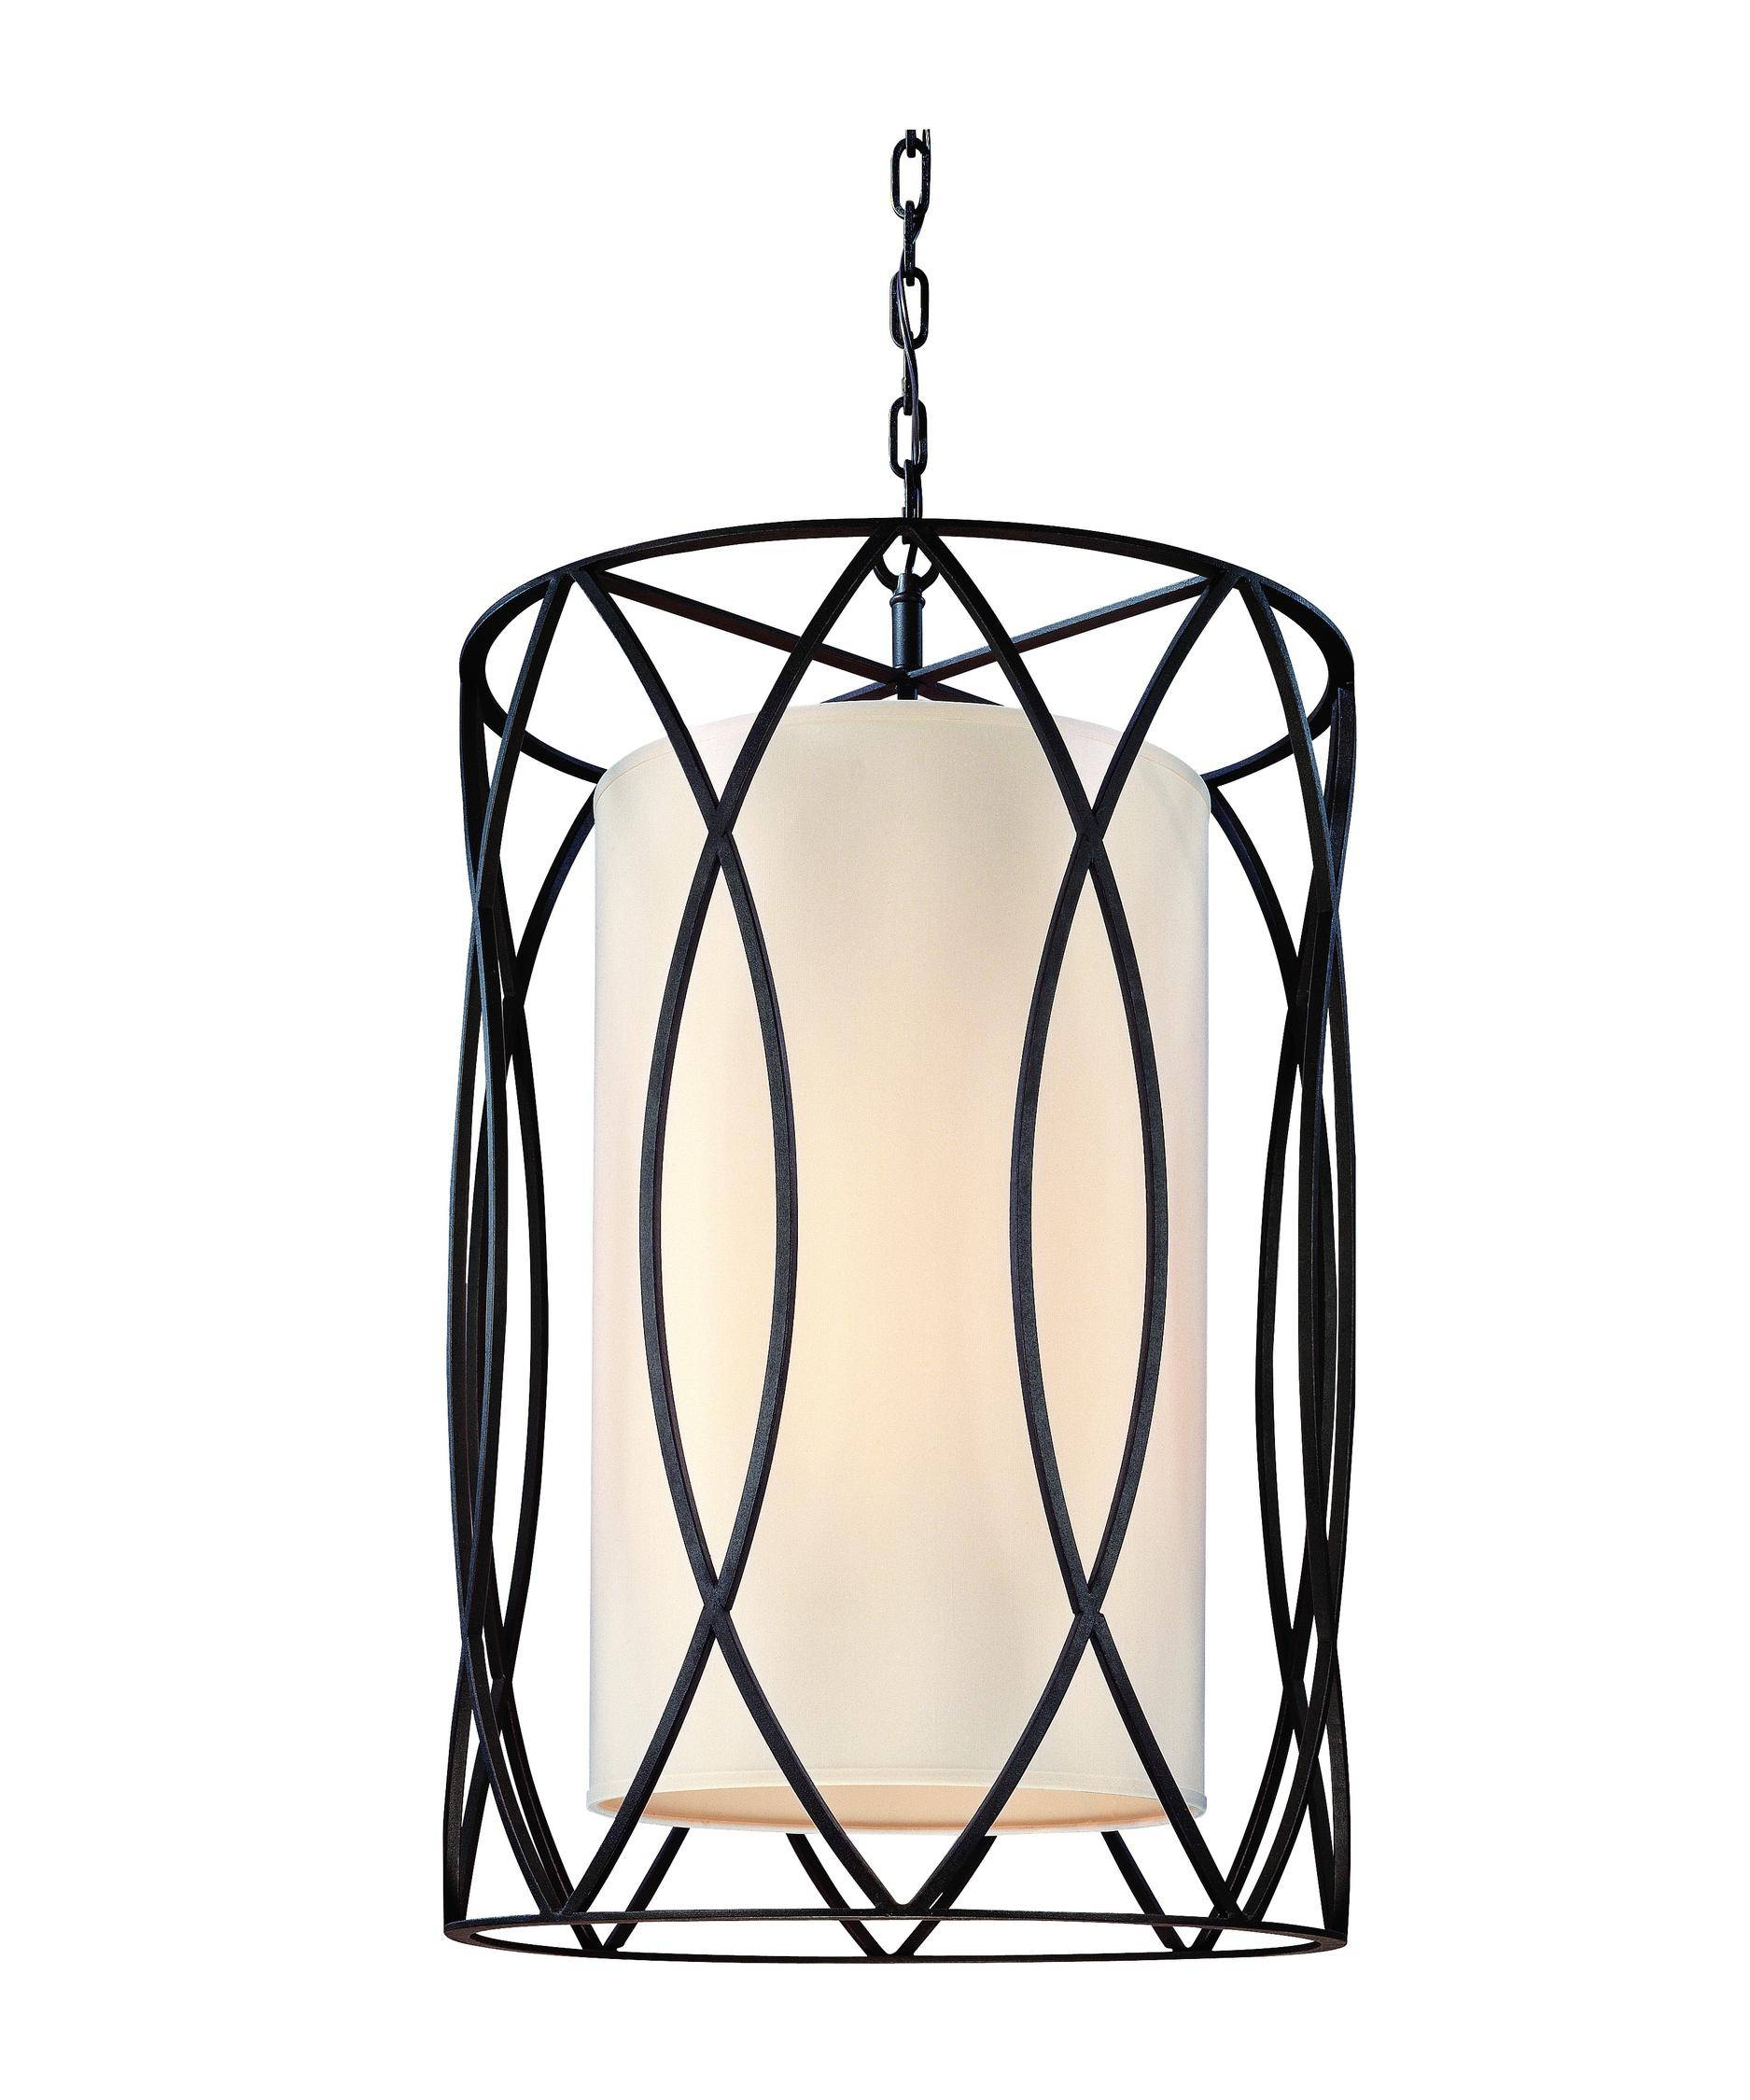 Troy Lighting F1288 Sausalito 22 Inch Wide Foyer Pendant | Capitol Intended For Troy Sausalito Pendants (View 4 of 15)